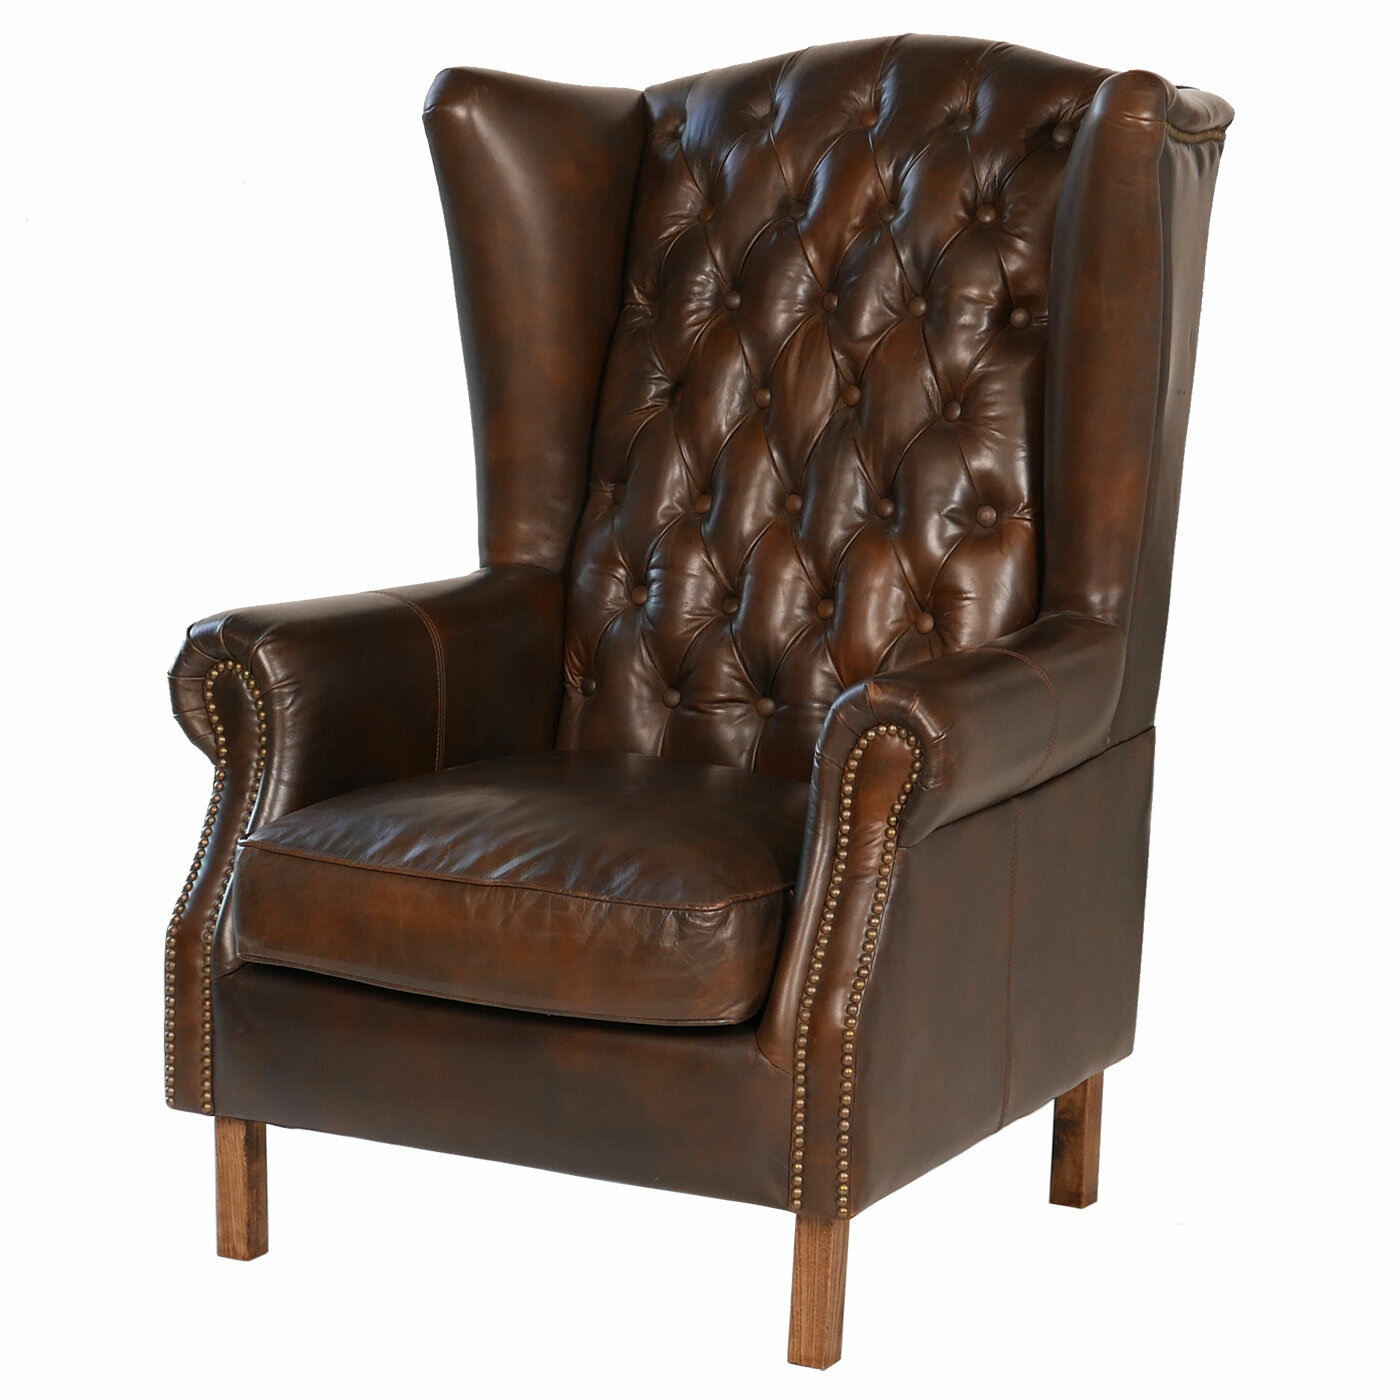 - Joseph Allen Old World Antique Leather Wingback Chair Wayfair